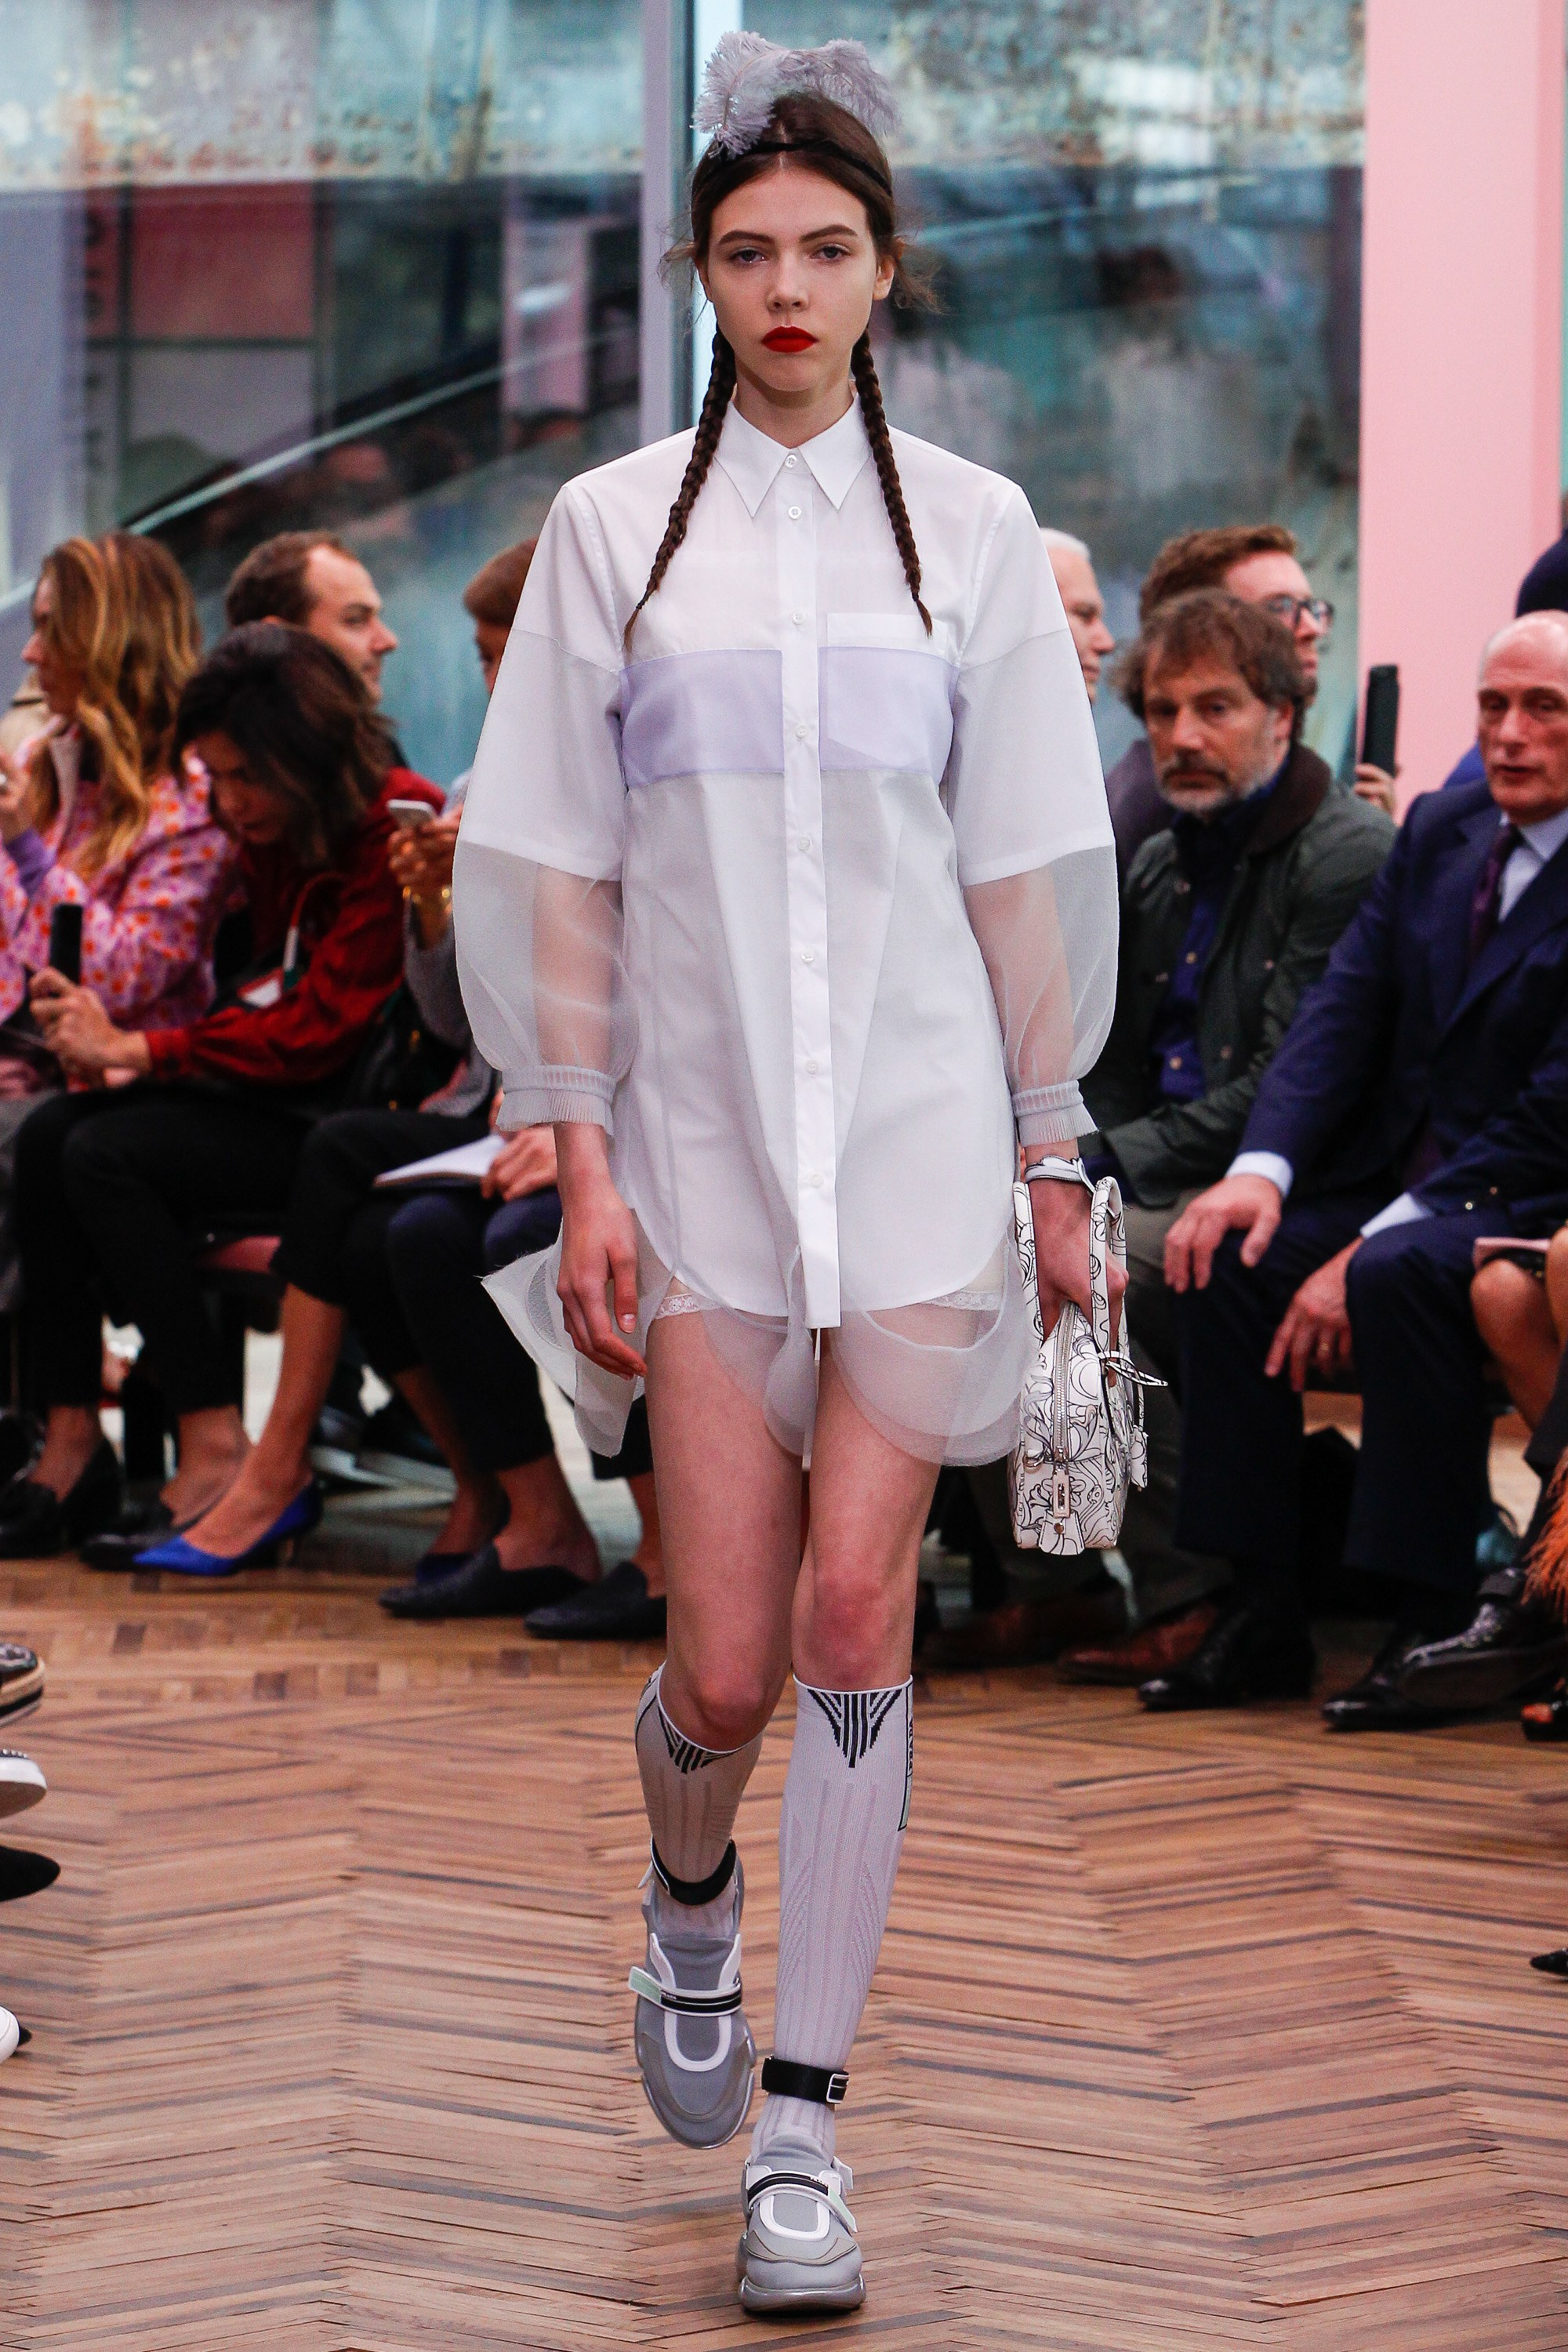 Prada is back on schedule with their Resort '18 Collection. Sending feminine dresses down the runway, alongside technical knits and other sporty references.